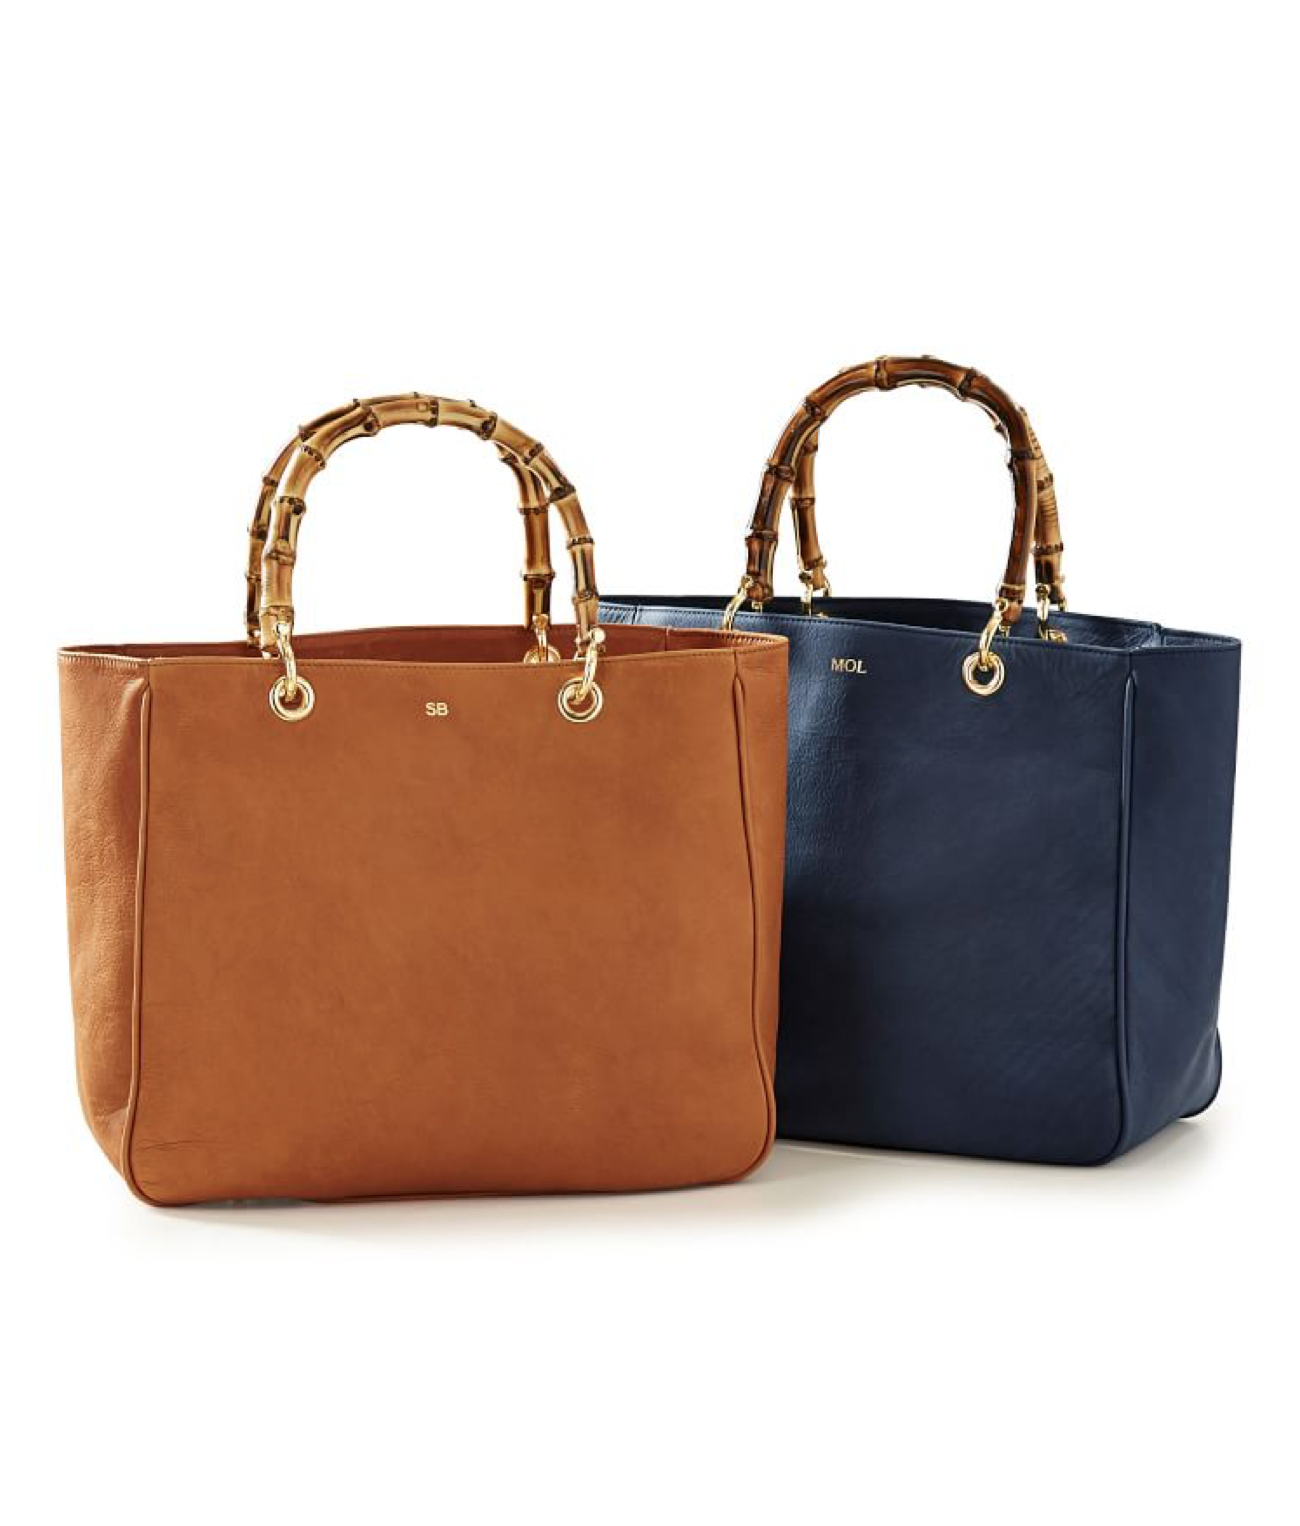 Bamboo and Leather Tote